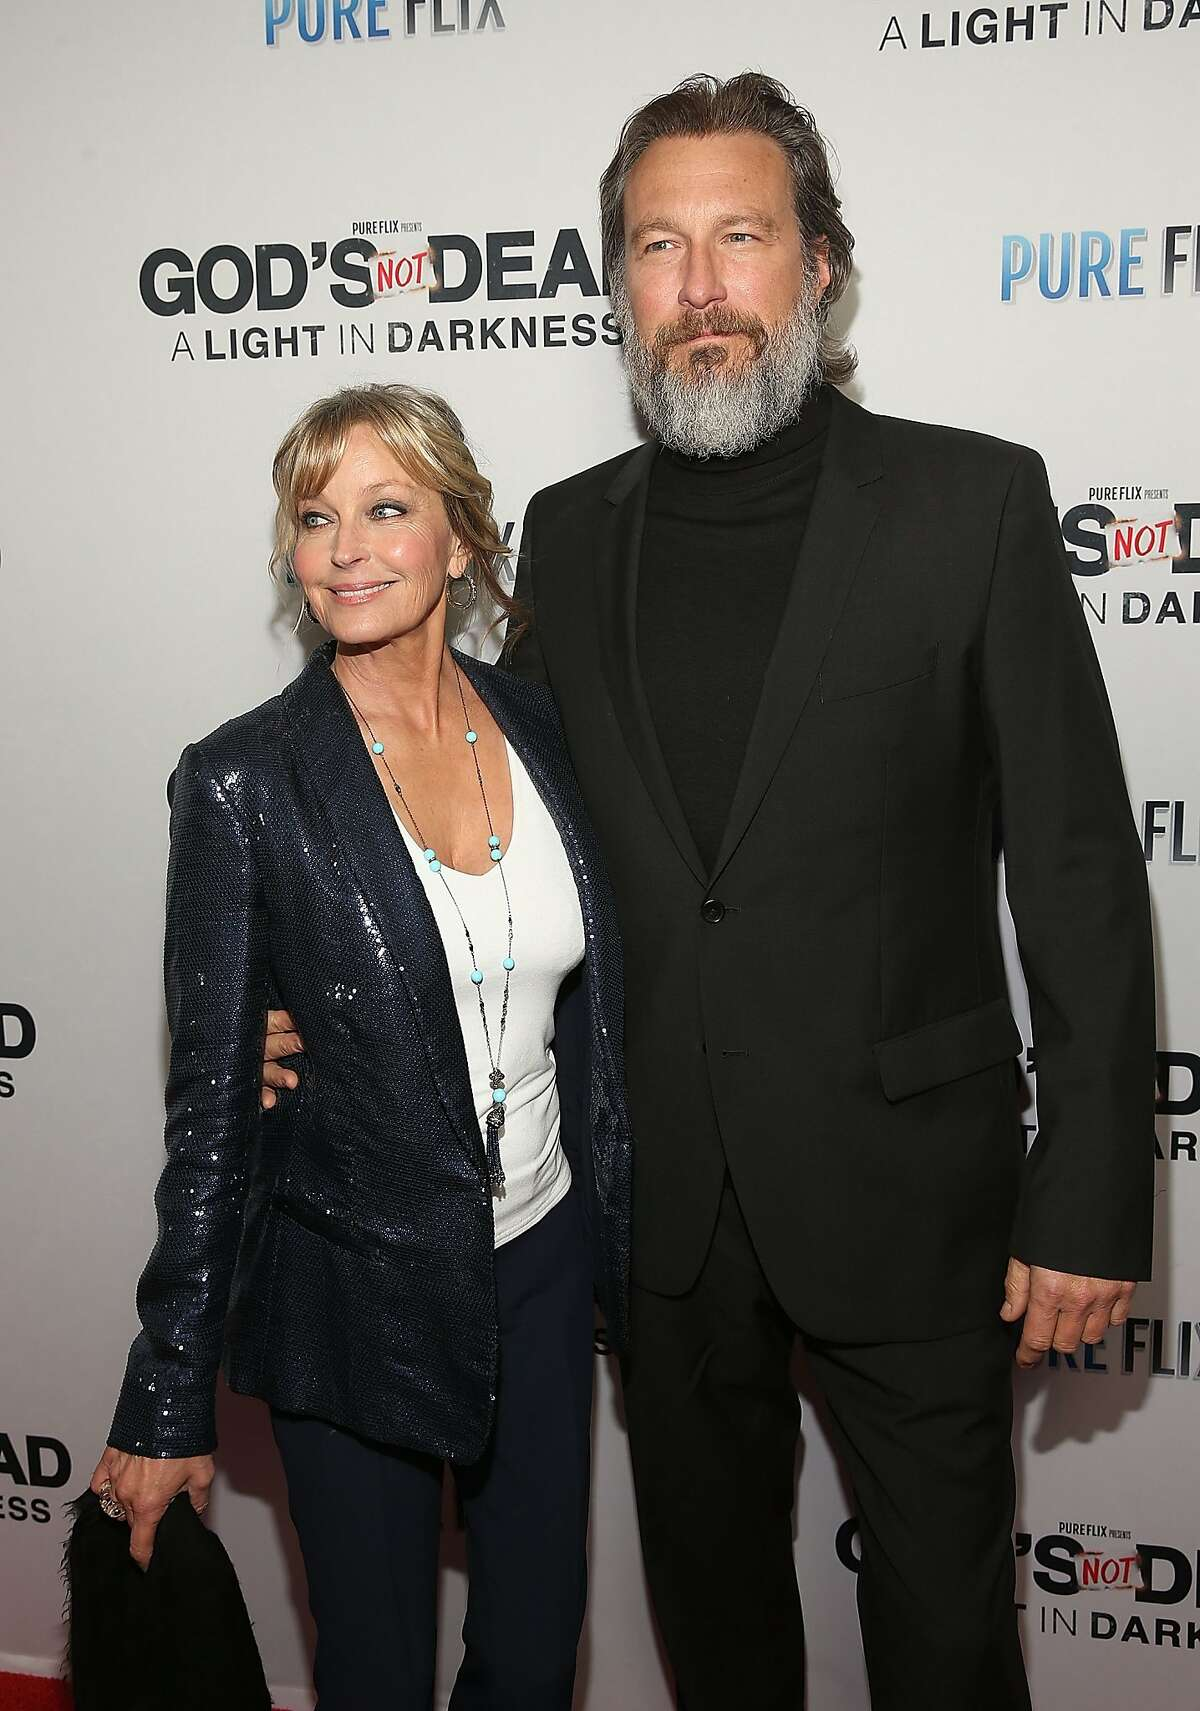 Derek has dated her partner, actor John Corbett, for 17 years. (Photo by Jesse Grant/Getty Images for Pure Flix Entertainment )